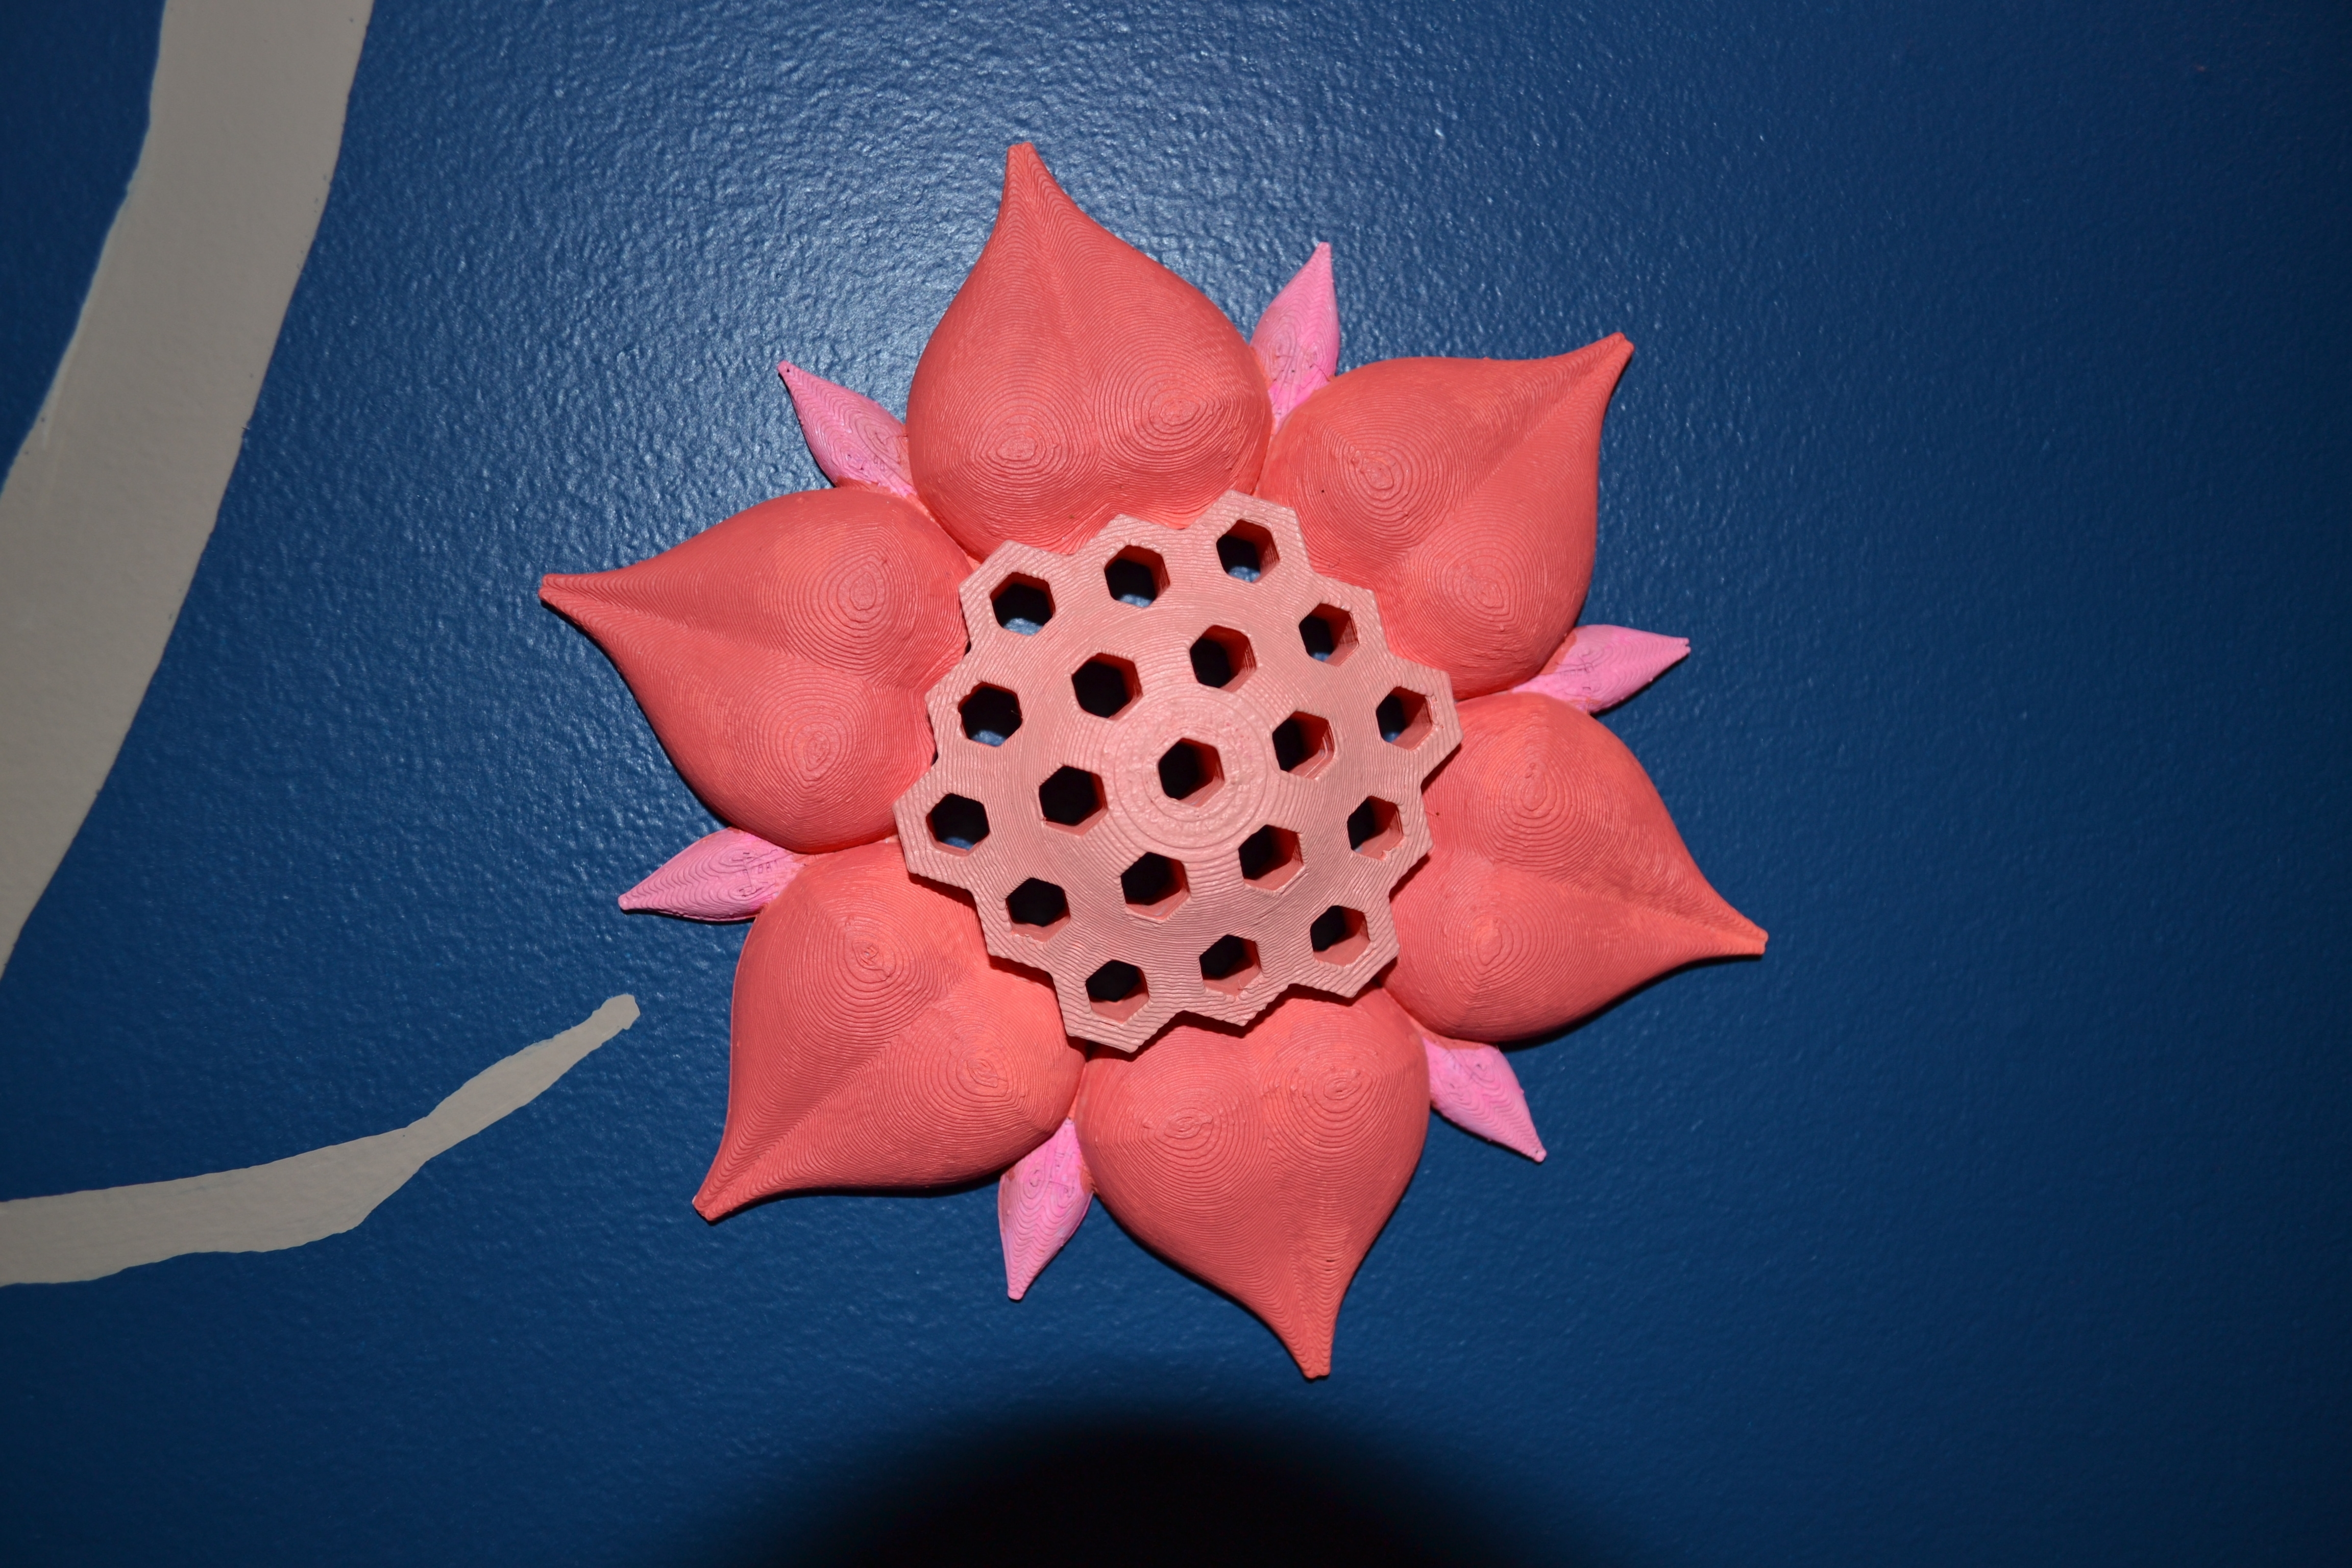 3D Printed Honey Comb Flower Wall Artconcept 2 Creation | Pinshape With Most Current Flower Wall Art (View 5 of 20)